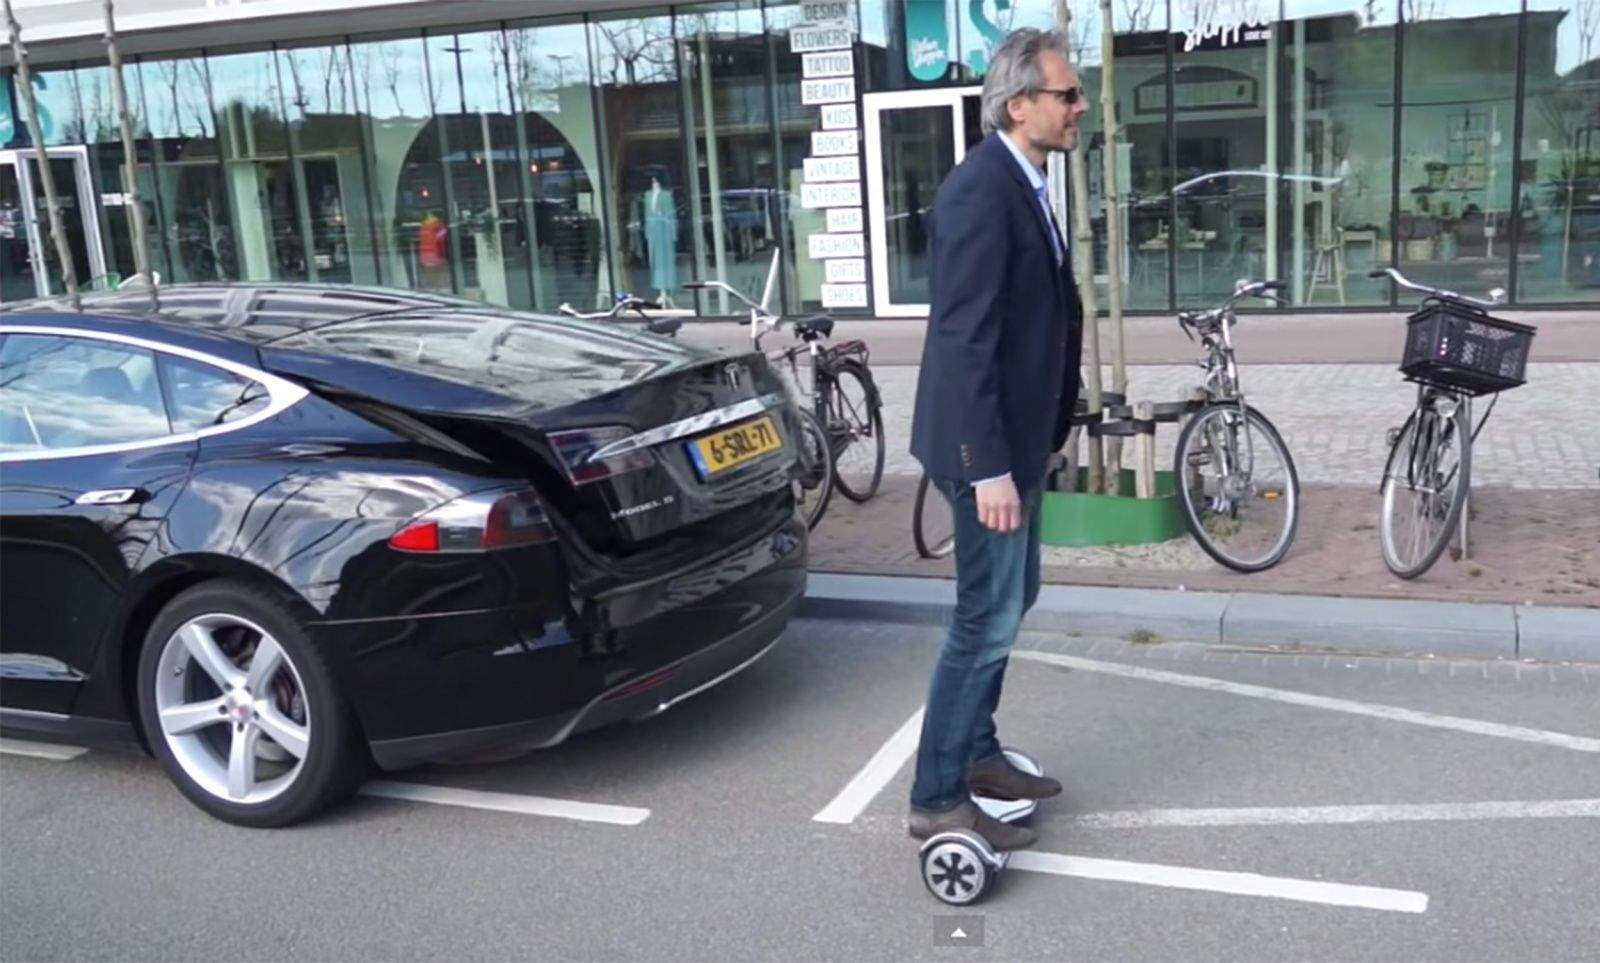 Oxboard Like A Segway Without Handles Cult Of Mac